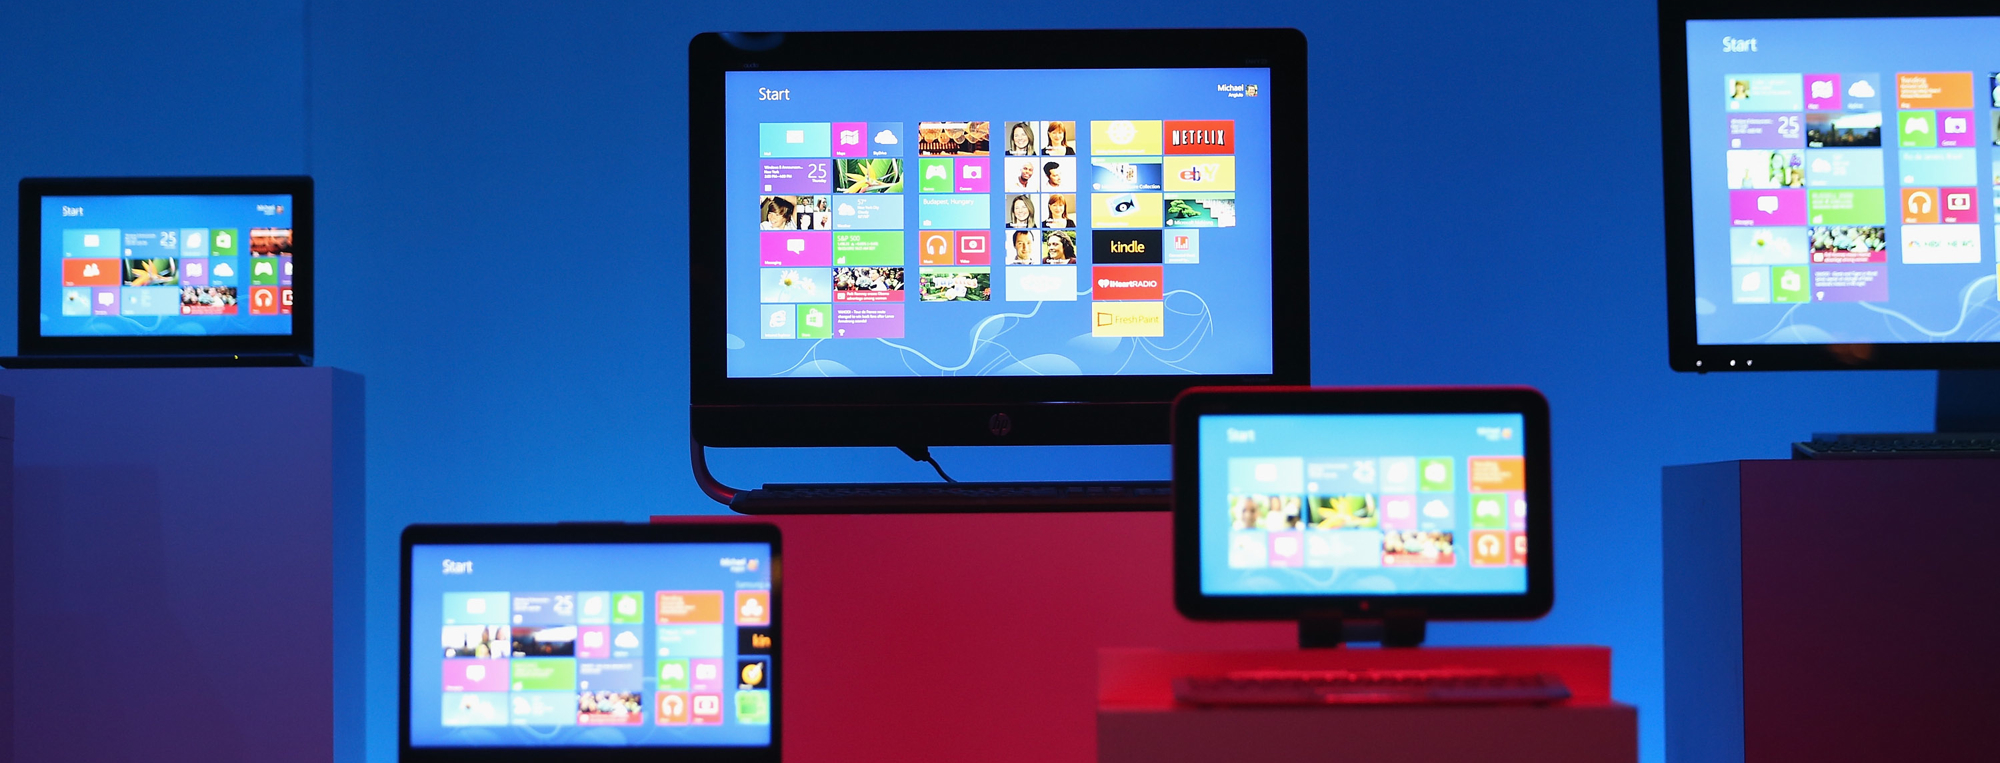 Windows 8.1 Passes Windows Vista in Market Share